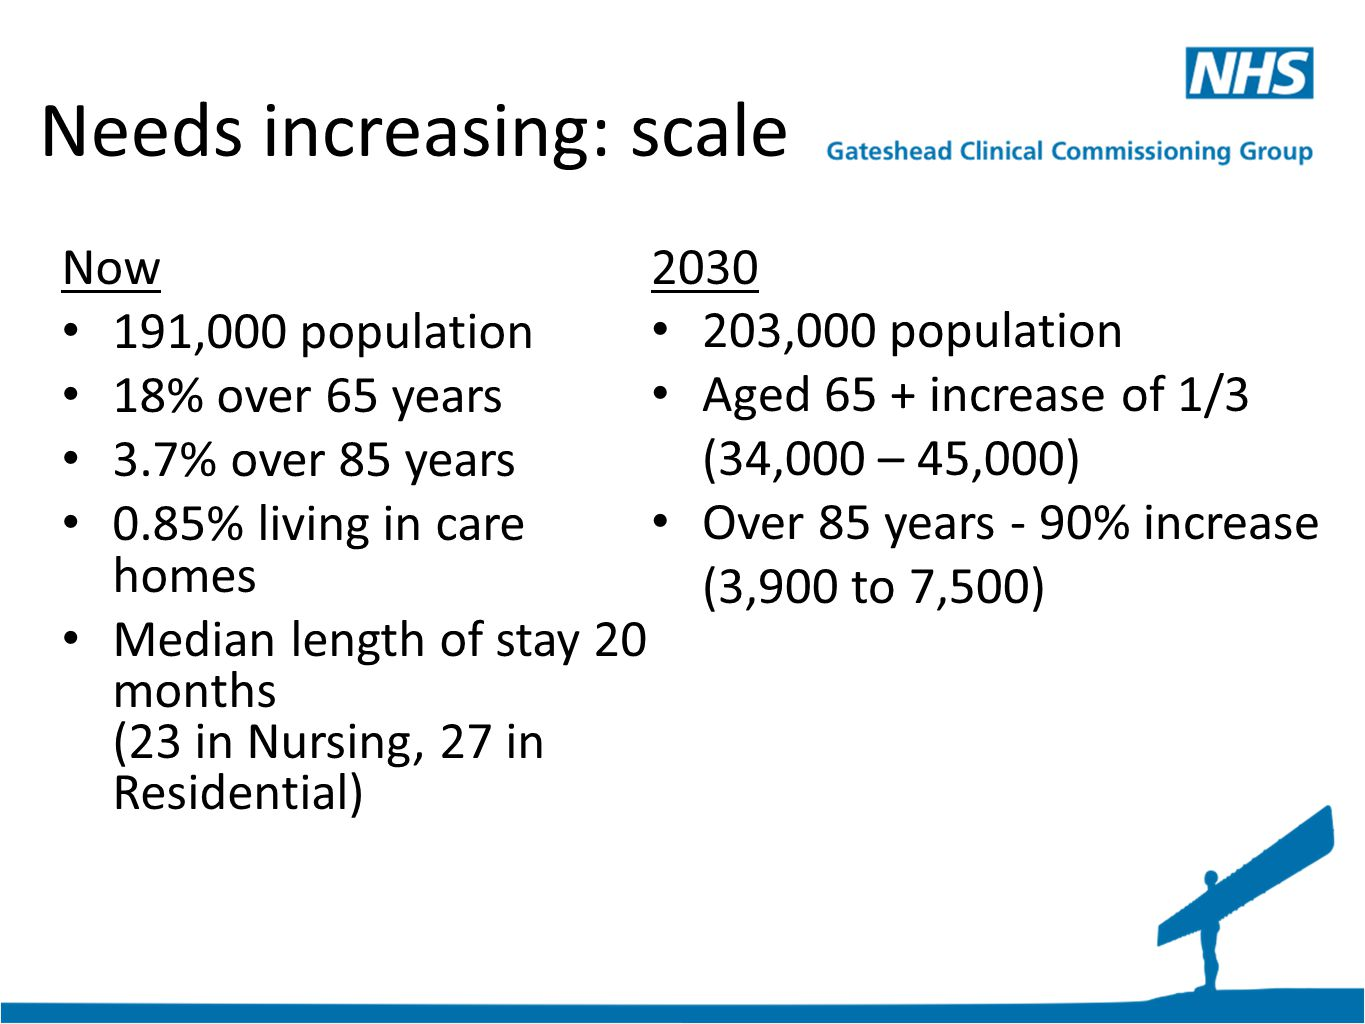 Needs increasing: scale Now 191,000 population 18% over 65 years 3.7% over 85 years 0.85% living in care homes Median length of stay 20 months (23 in Nursing, 27 in Residential) 2030 203,000 population Aged 65 + increase of 1/3 (34,000 – 45,000) Over 85 years - 90% increase (3,900 to 7,500)